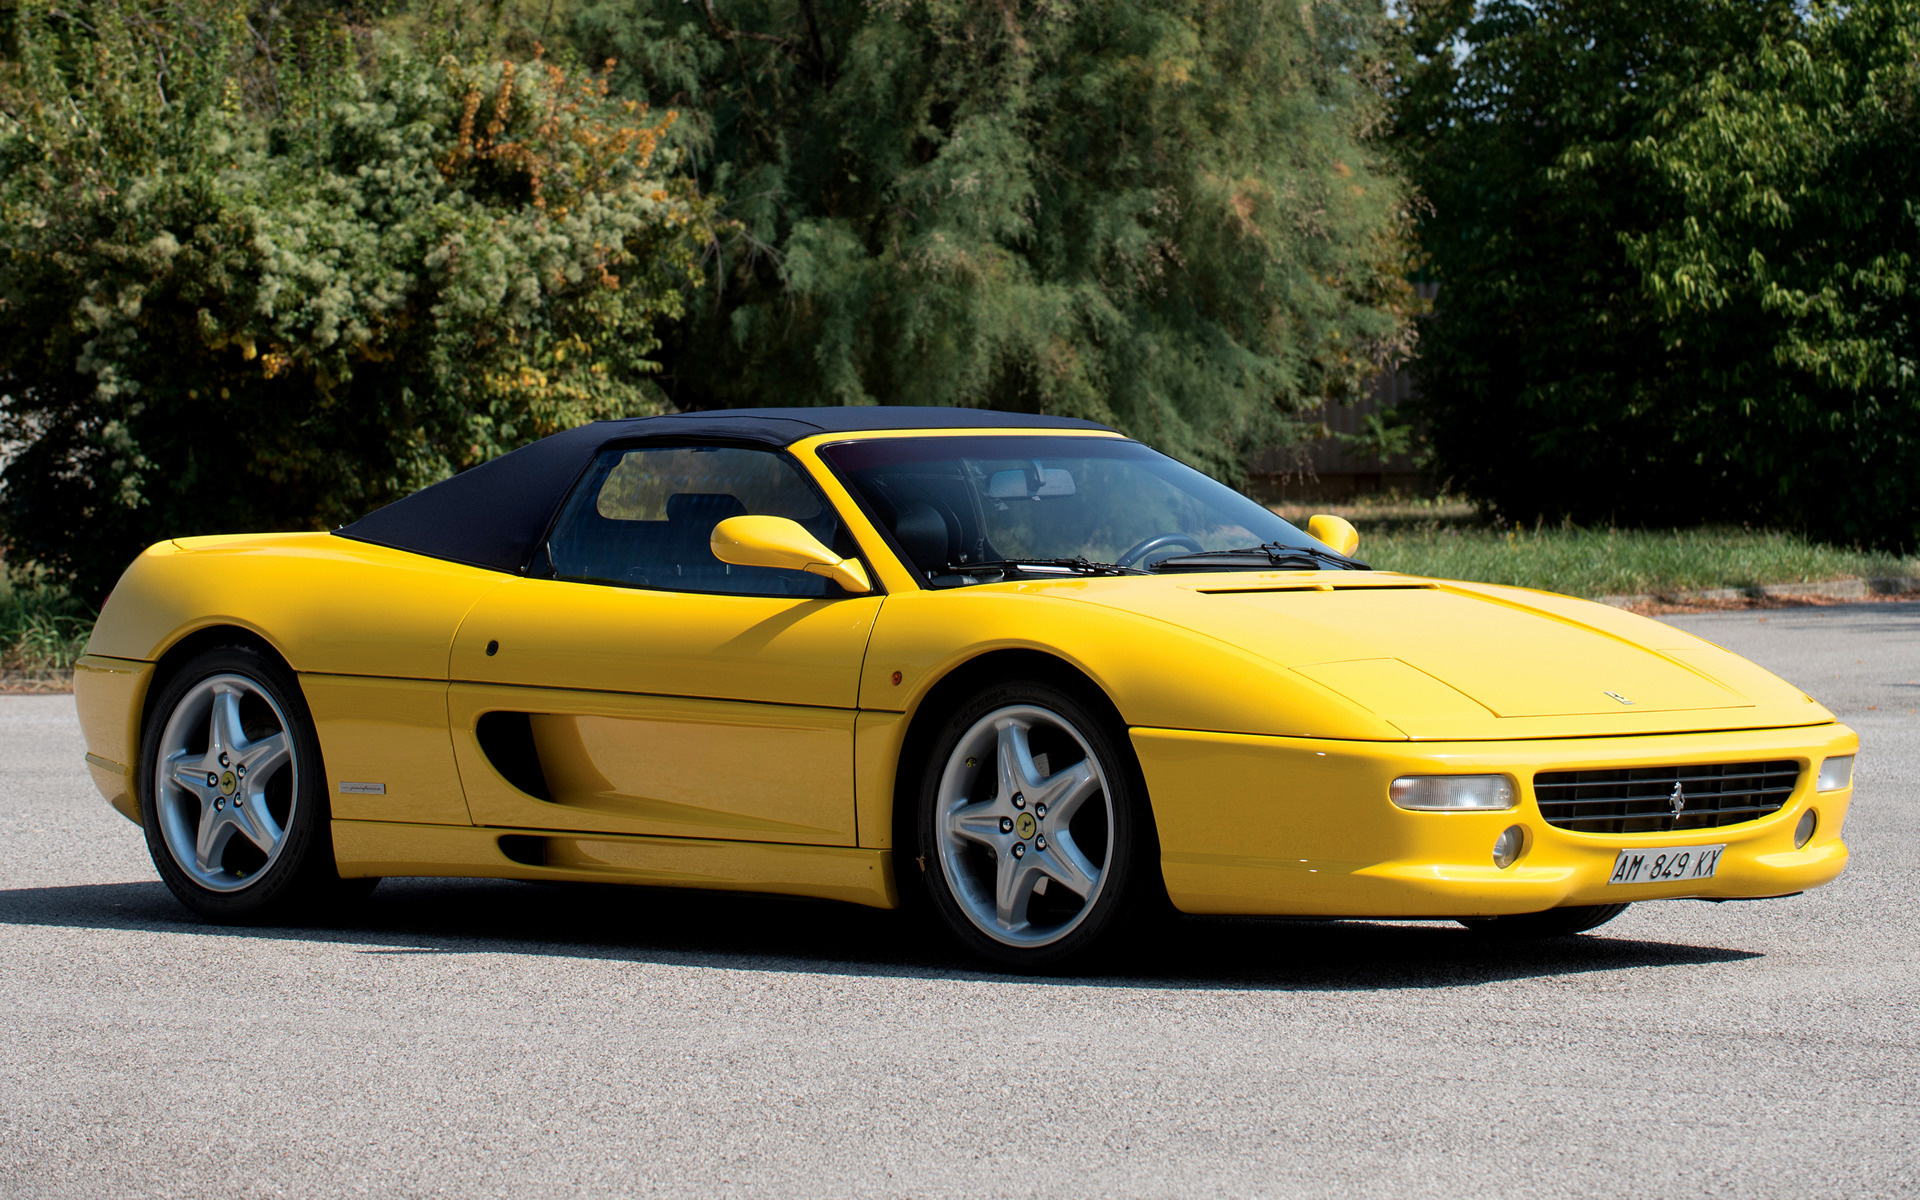 ferrari f355 spider wallpaper - photo #18